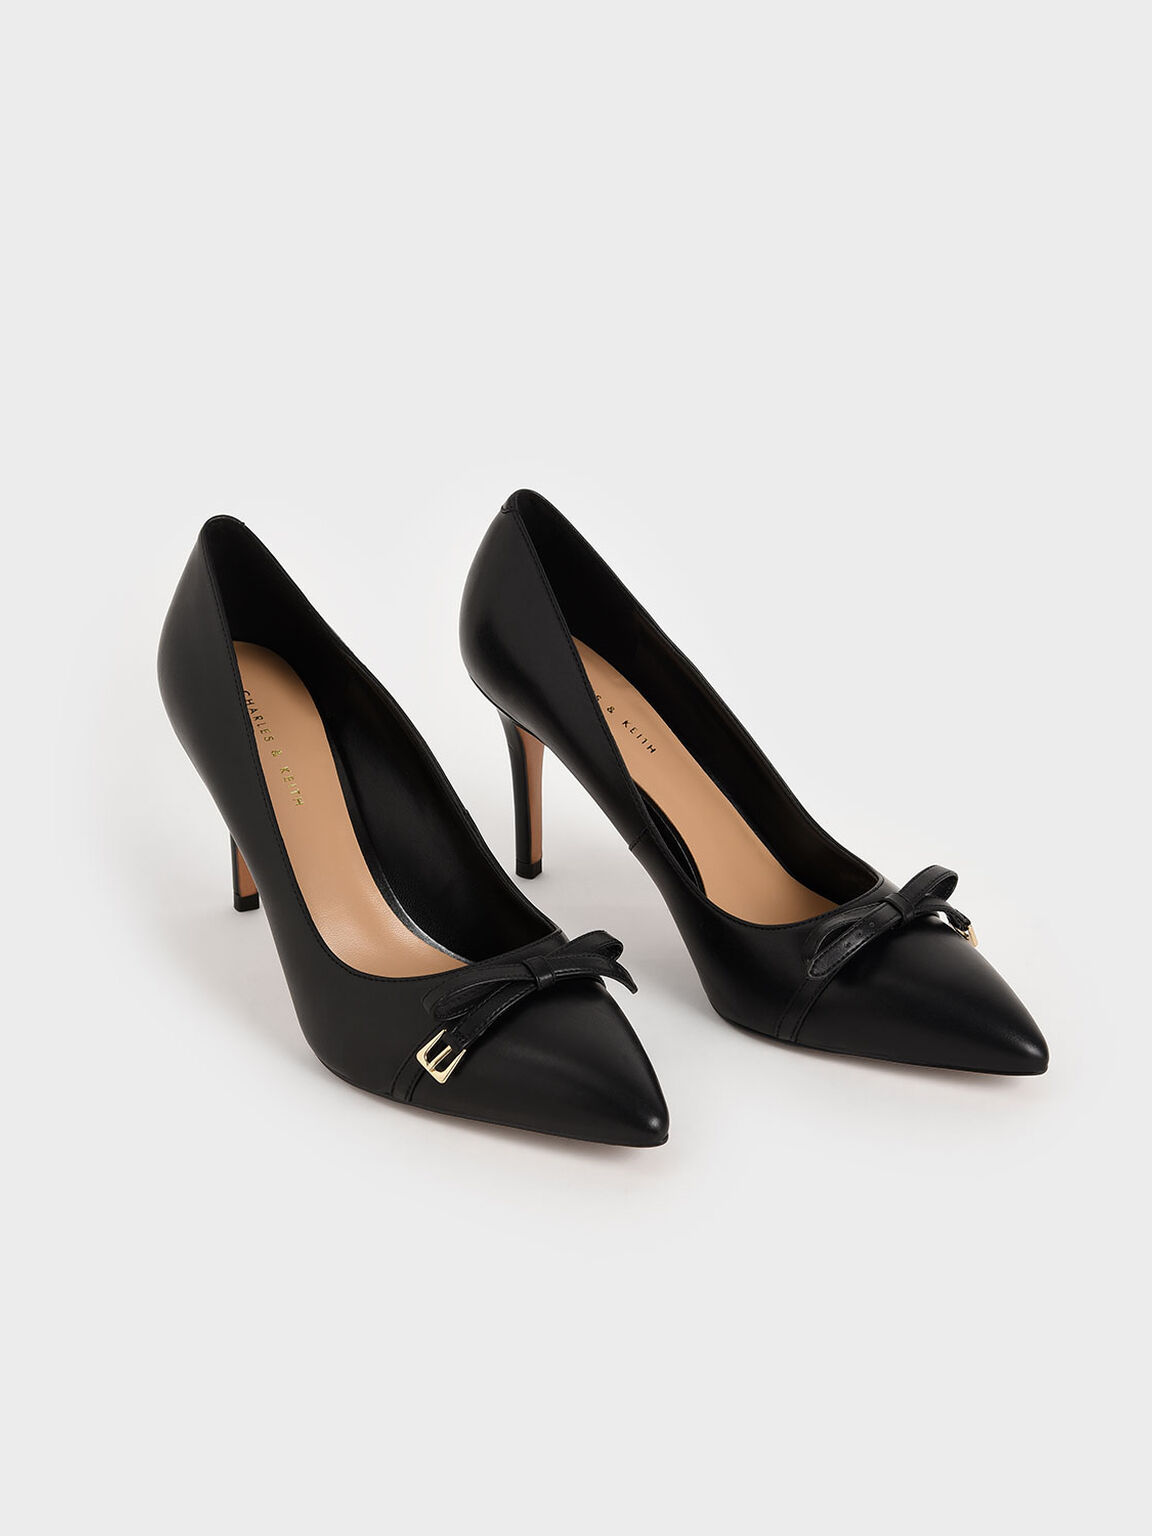 Bow Stiletto Pumps, Black, hi-res